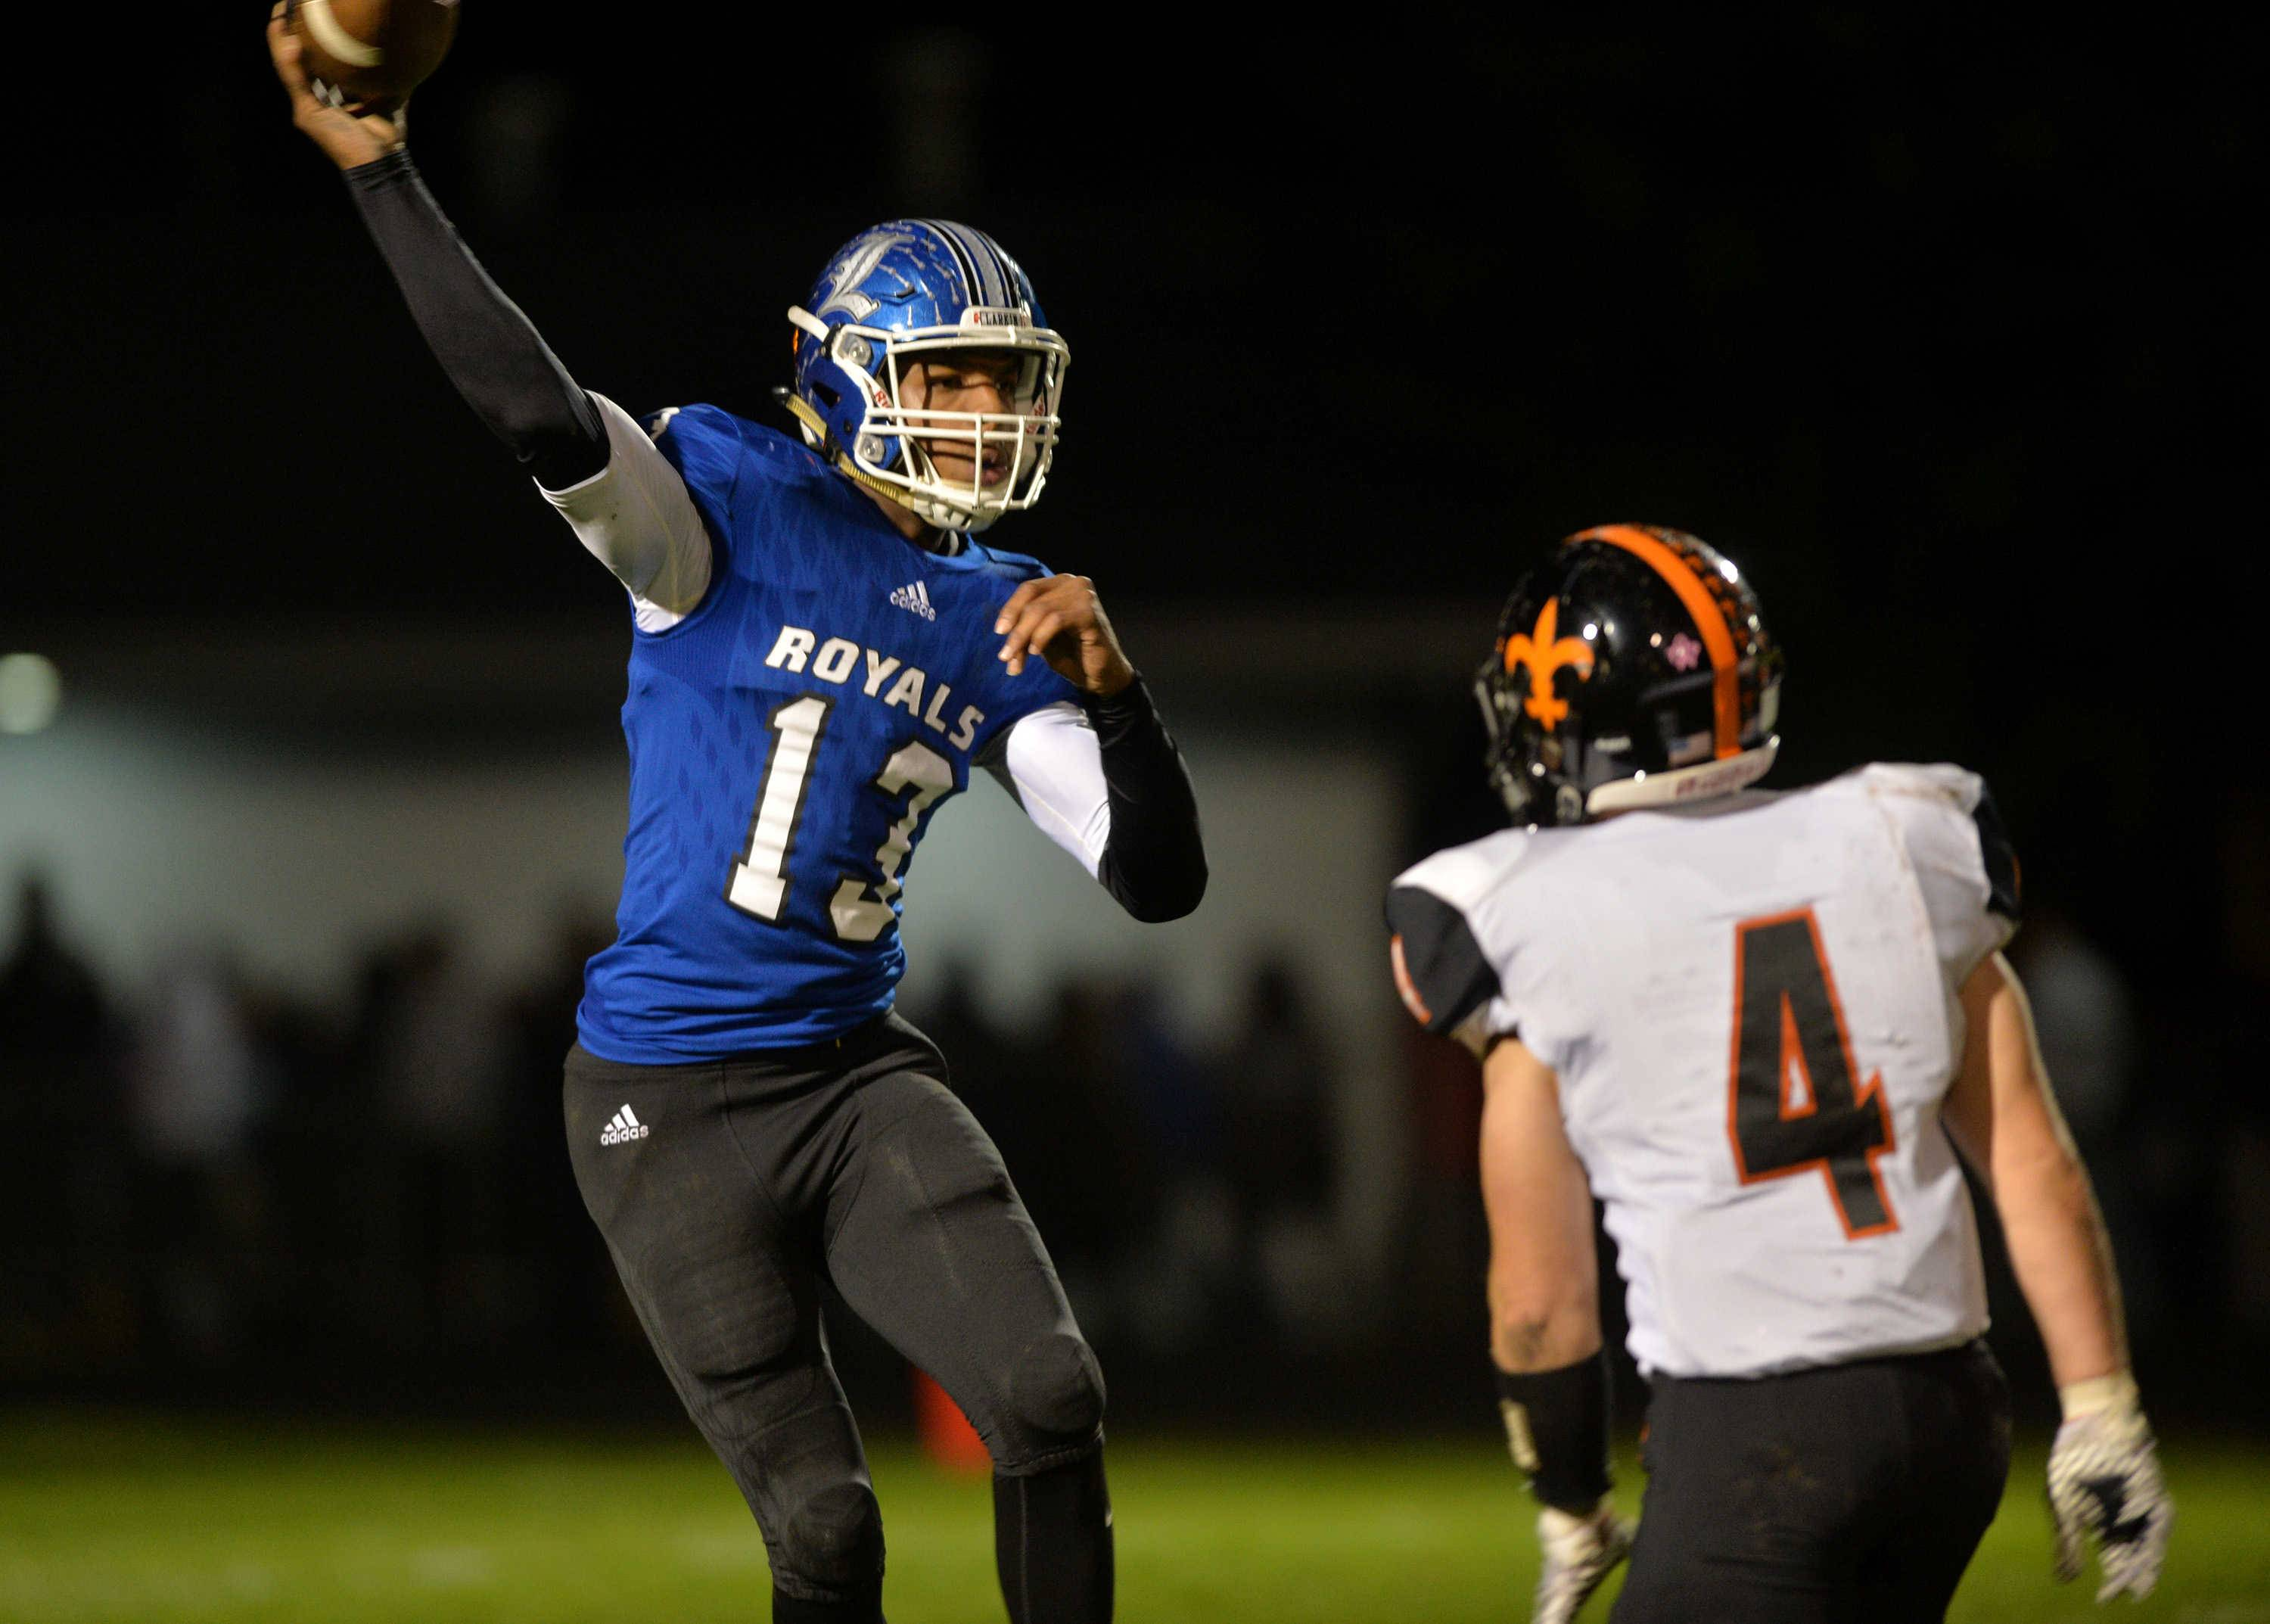 Larkin quarterback David Hibbler attempts a pass as St. Charles East's Nichikas Piaskowy defends in the second quarter of their Upstate Eight contest Friday night at Memorial Field in Elgin.